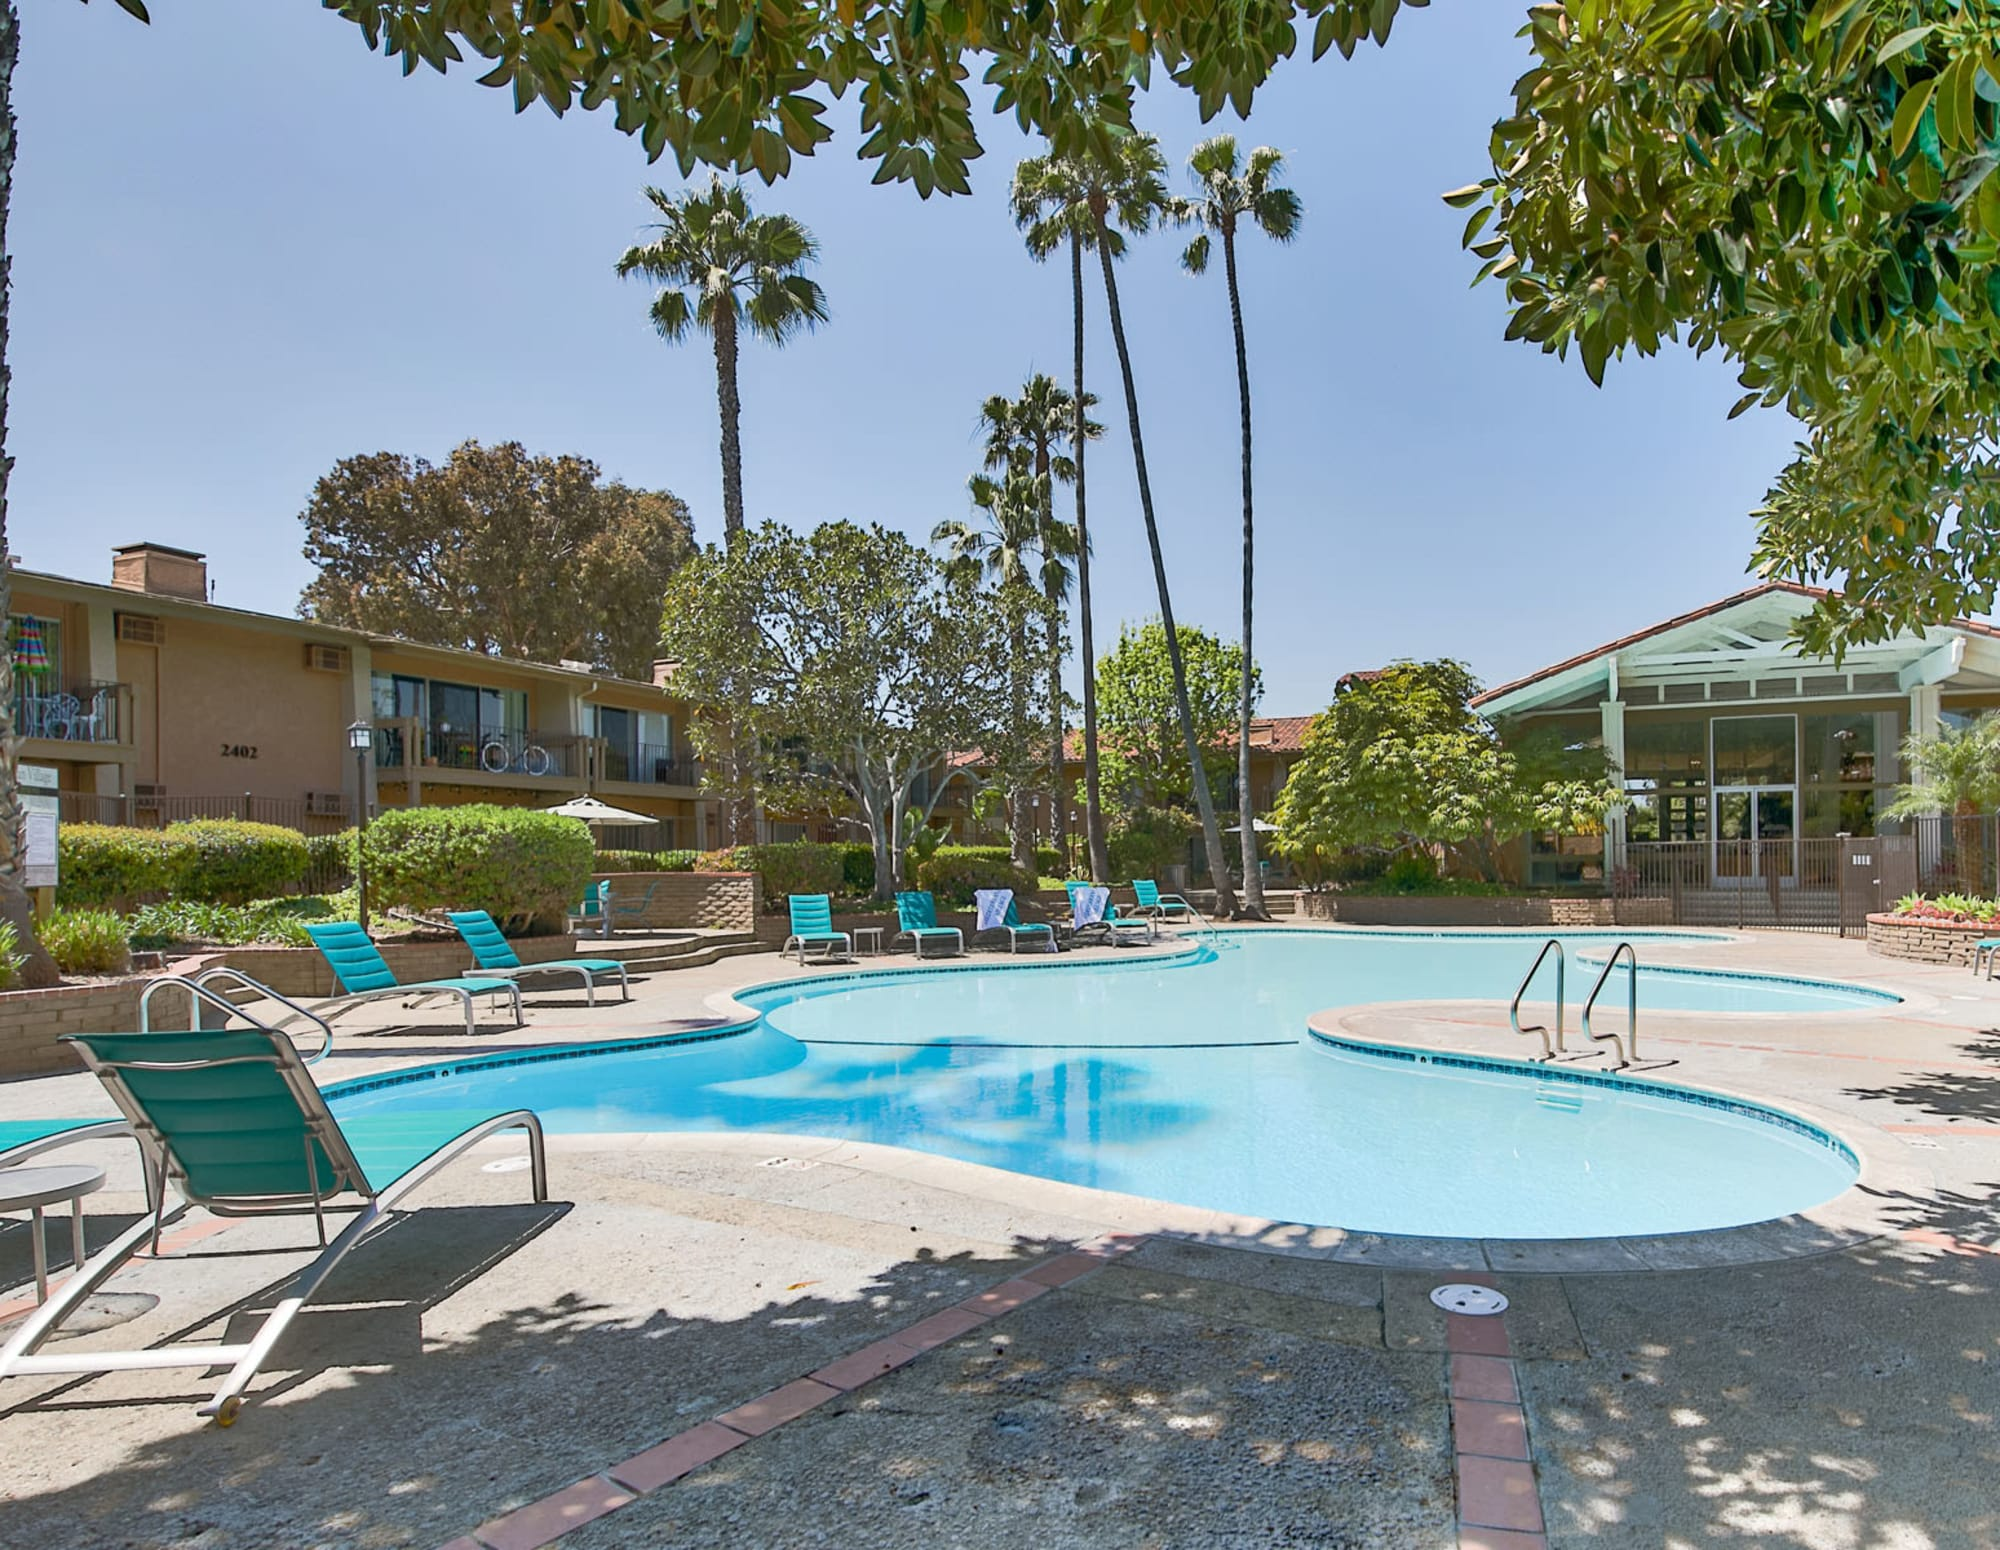 Resort-style swimming pool area with lounge chairs shaded by mature trees at Mediterranean Village Apartments in Costa Mesa, California